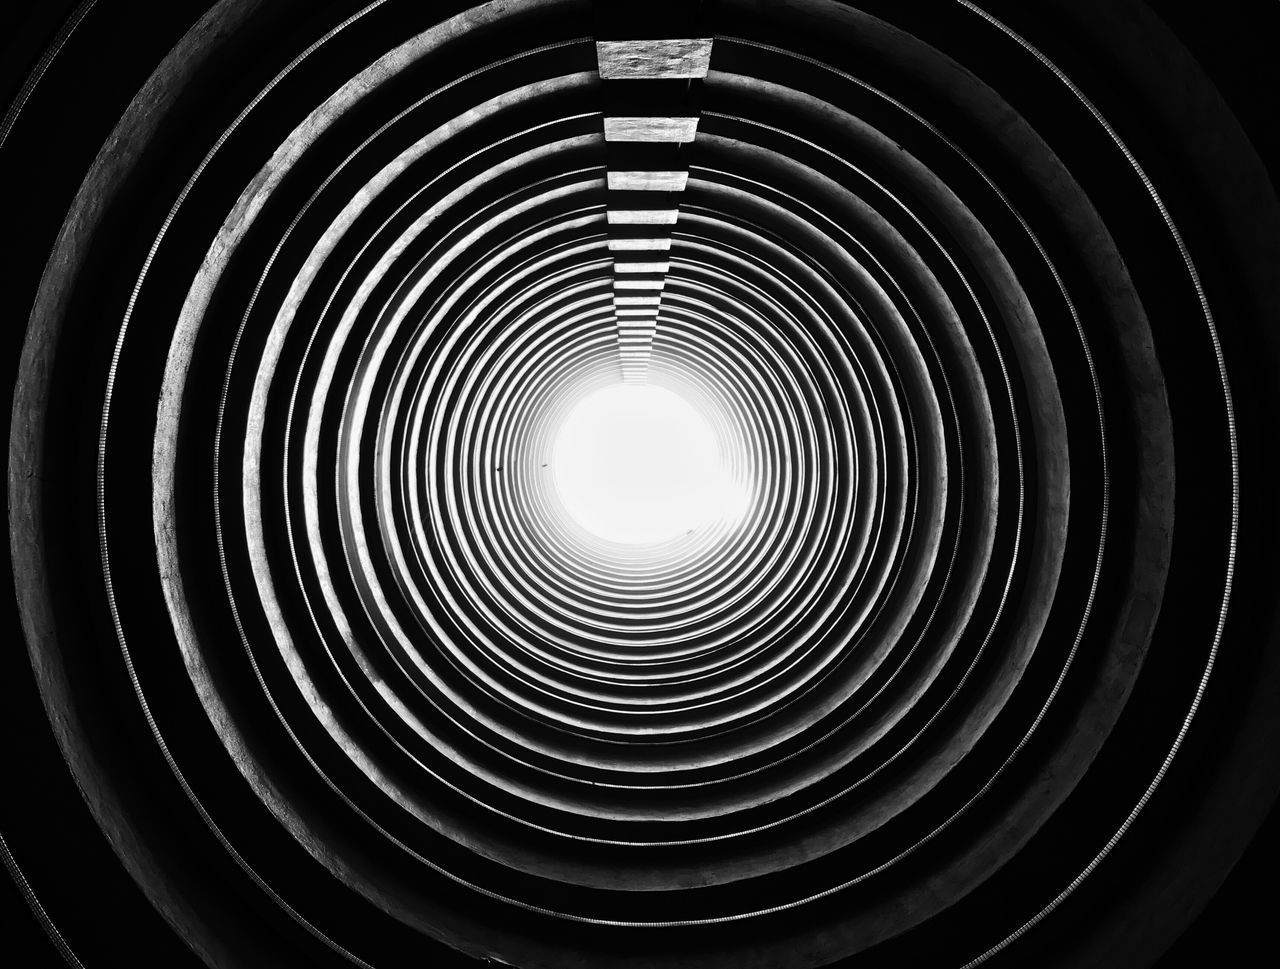 Pattern Indoors  Residential Building Atrium Apartment Building Housing Estate Hong Kong IPhoneography Urban Lifestyle Dense Living Urban Urban Geometry Black And White Low Angle View Welcome To Black The Secret Spaces Break The Mold The Architect - 2017 EyeEm Awards